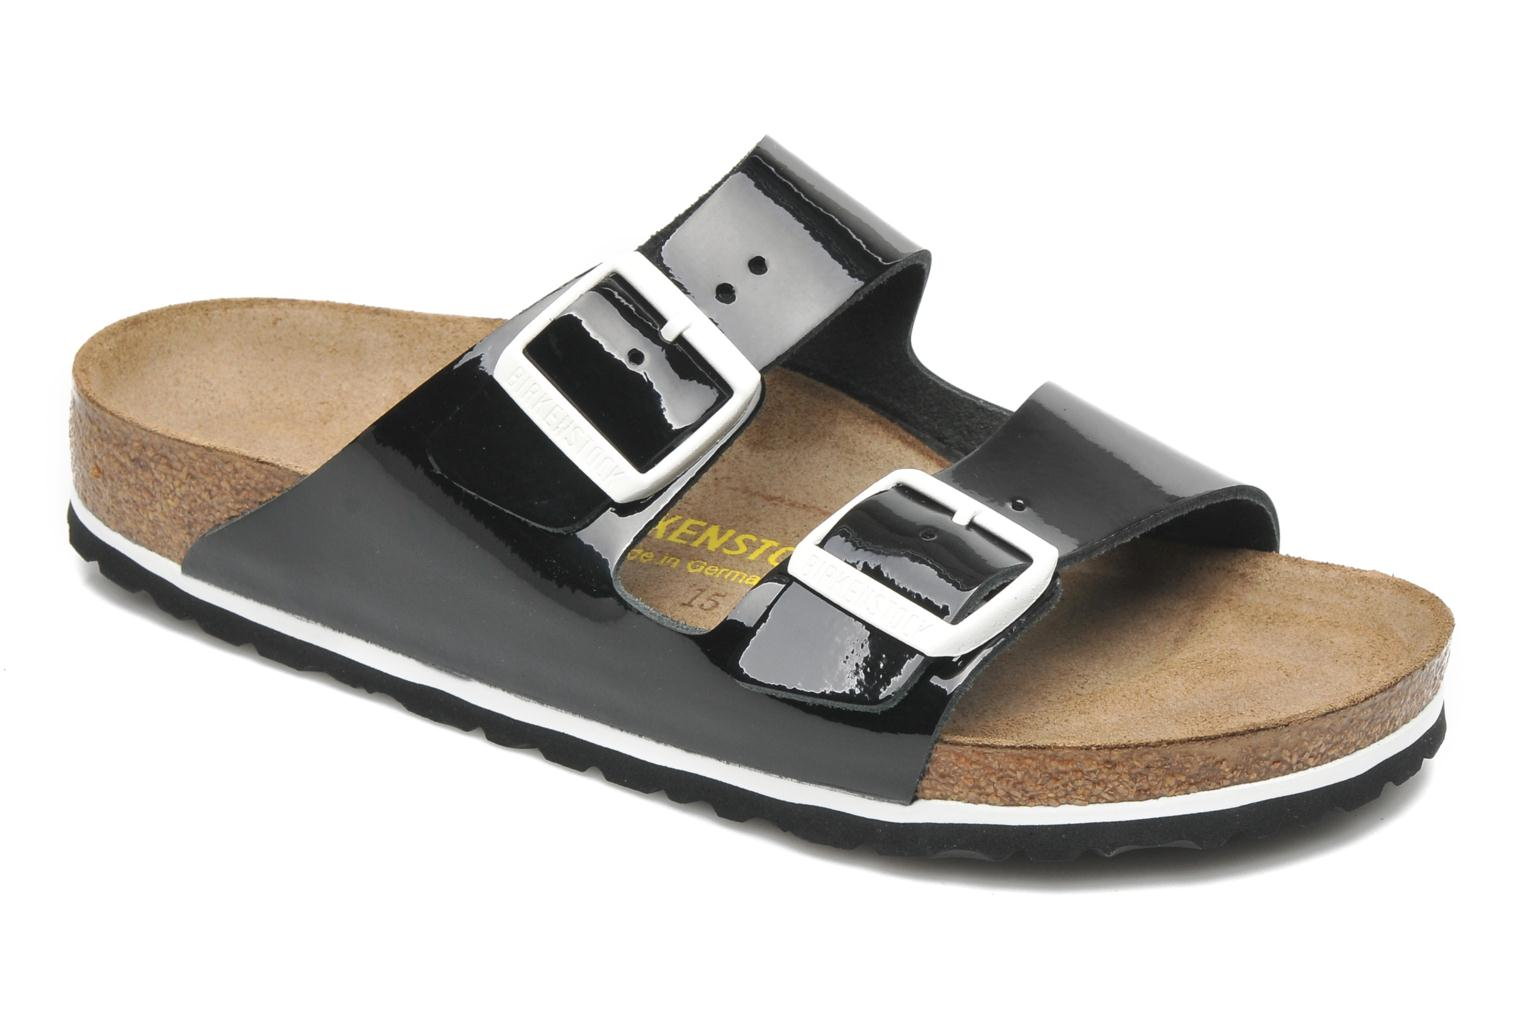 Arizona Cuir W by BirkenstockRebajas - 30%